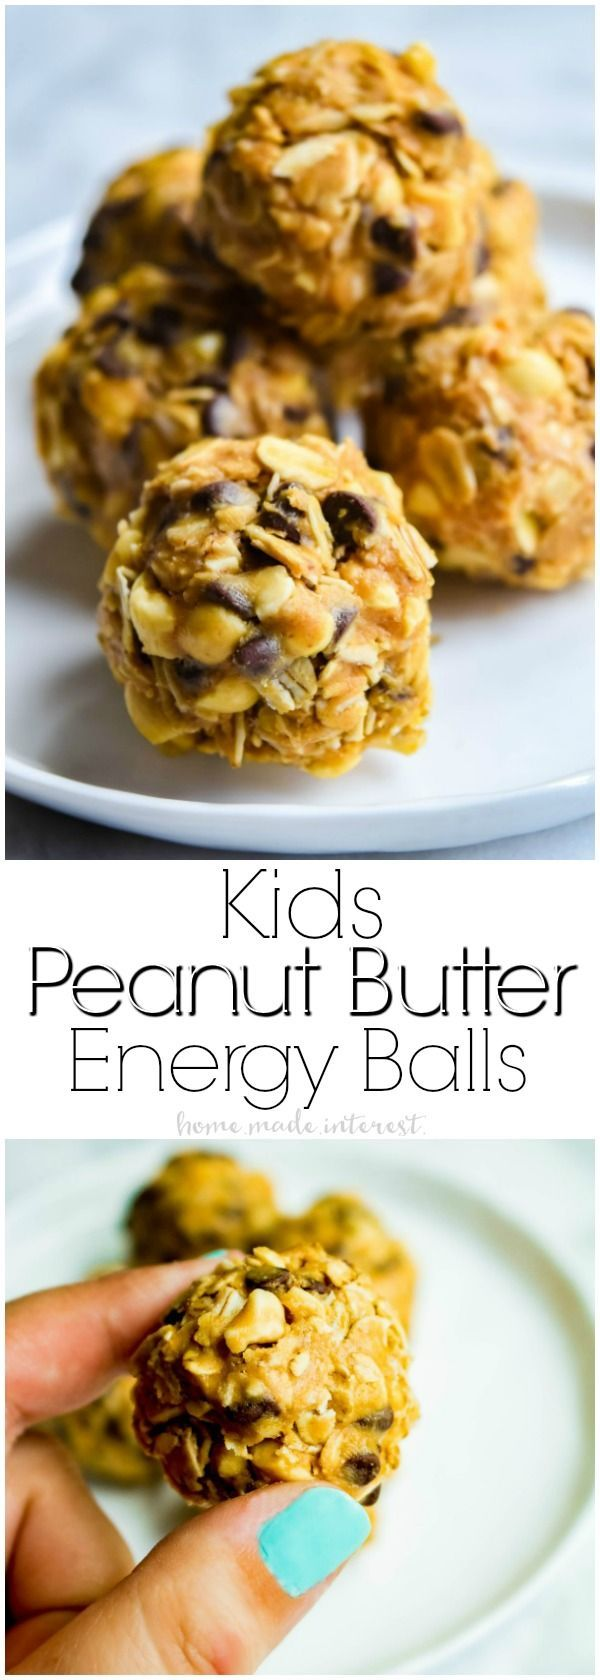 Peanut Butter Energy Balls | If your kids play sports you're probably always looking for healthy snack for sports. These easy peanut butter energy balls are packed full of protein and a few delicious chocolate chips to help keep your kid's energy up when they play sports. This healthy snack recipe for kids will keep the whole team happy! AD